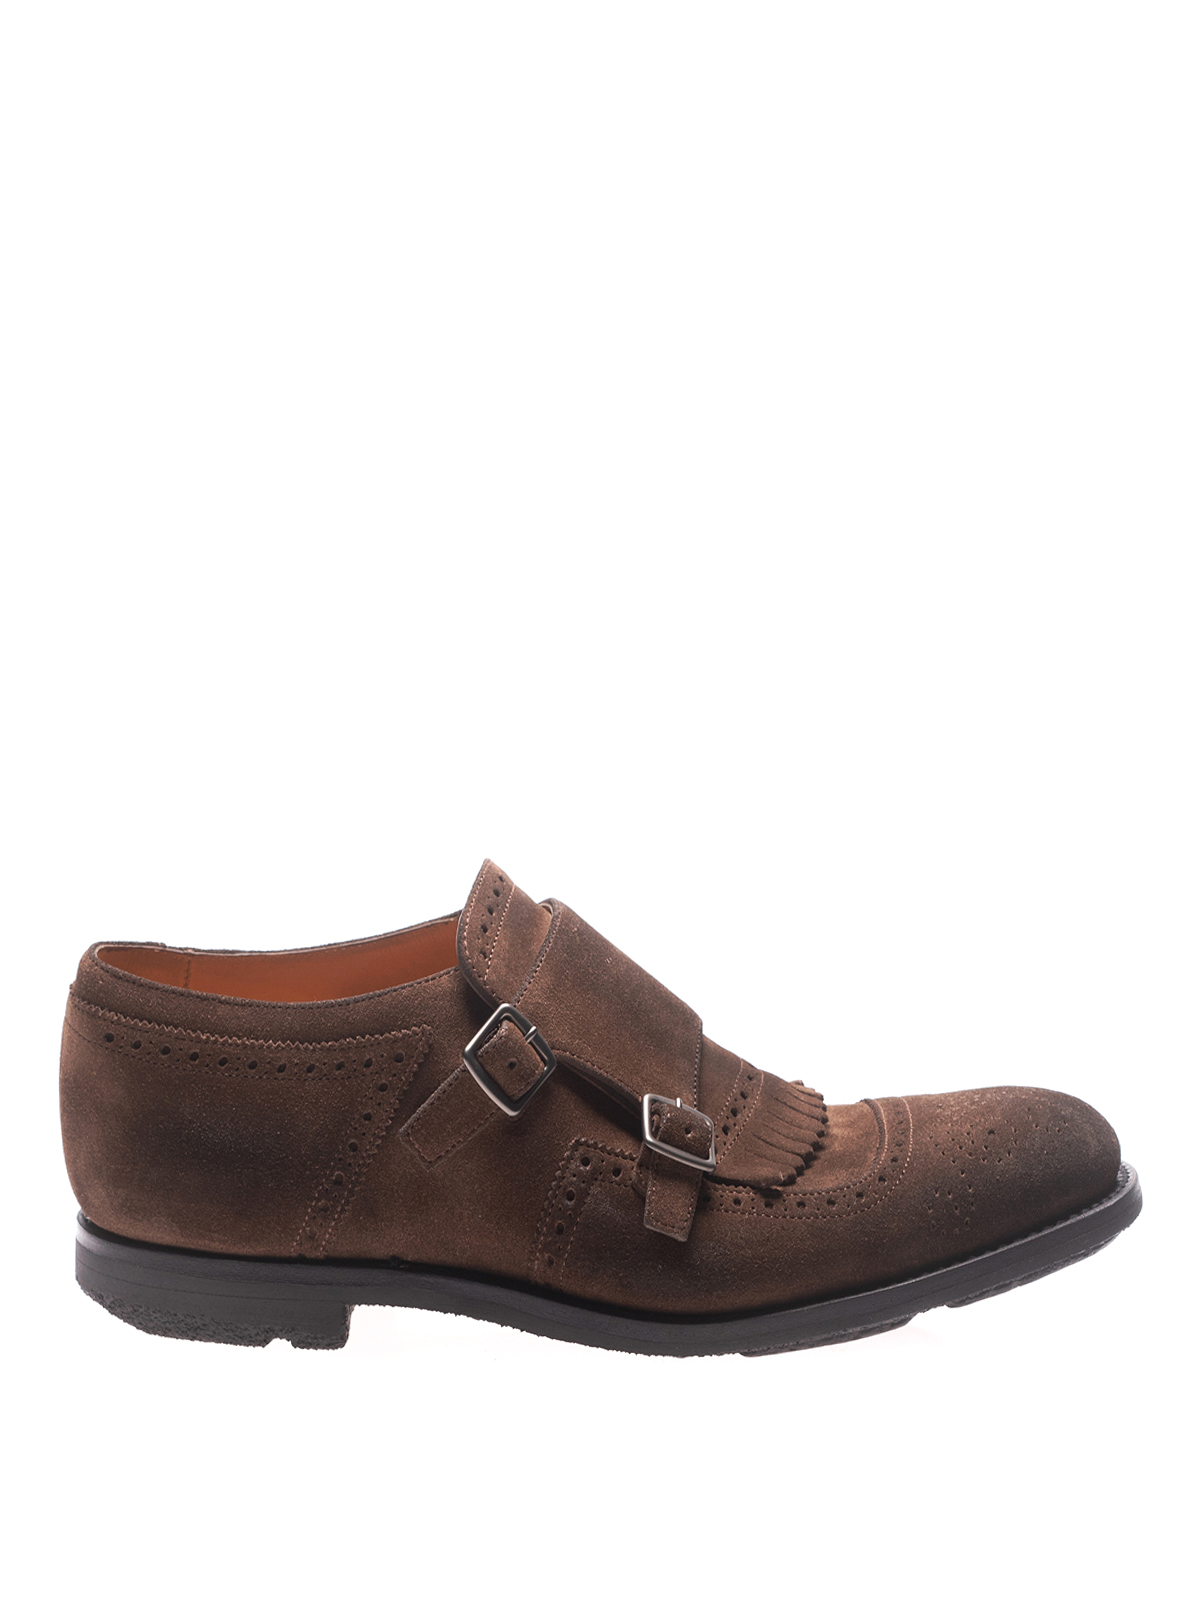 Church's Seaforth Suede Brogue Monk Straps In Brown